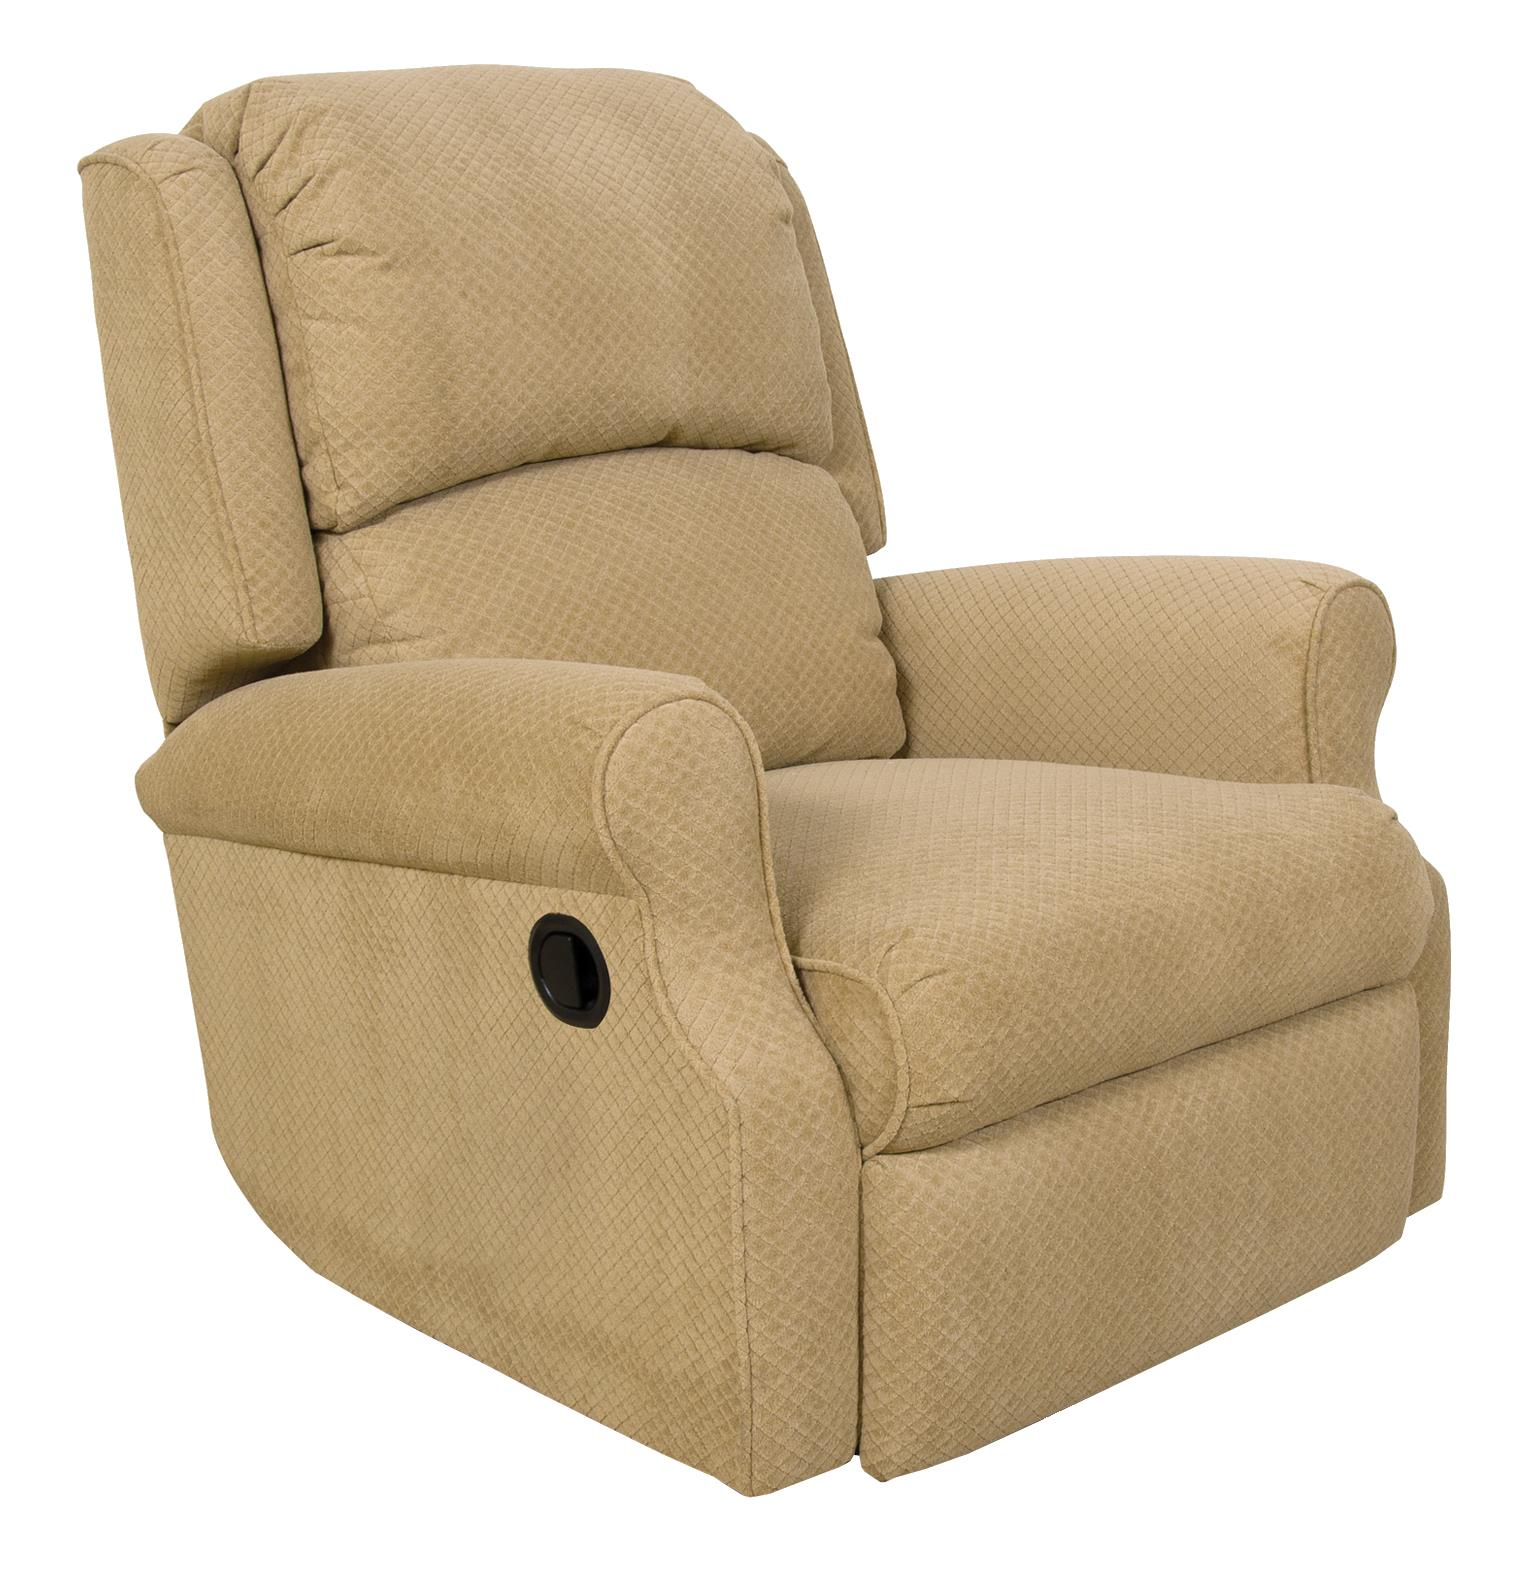 Marybeth Rocker Recliner with Power by England at Goffena Furniture & Mattress Center